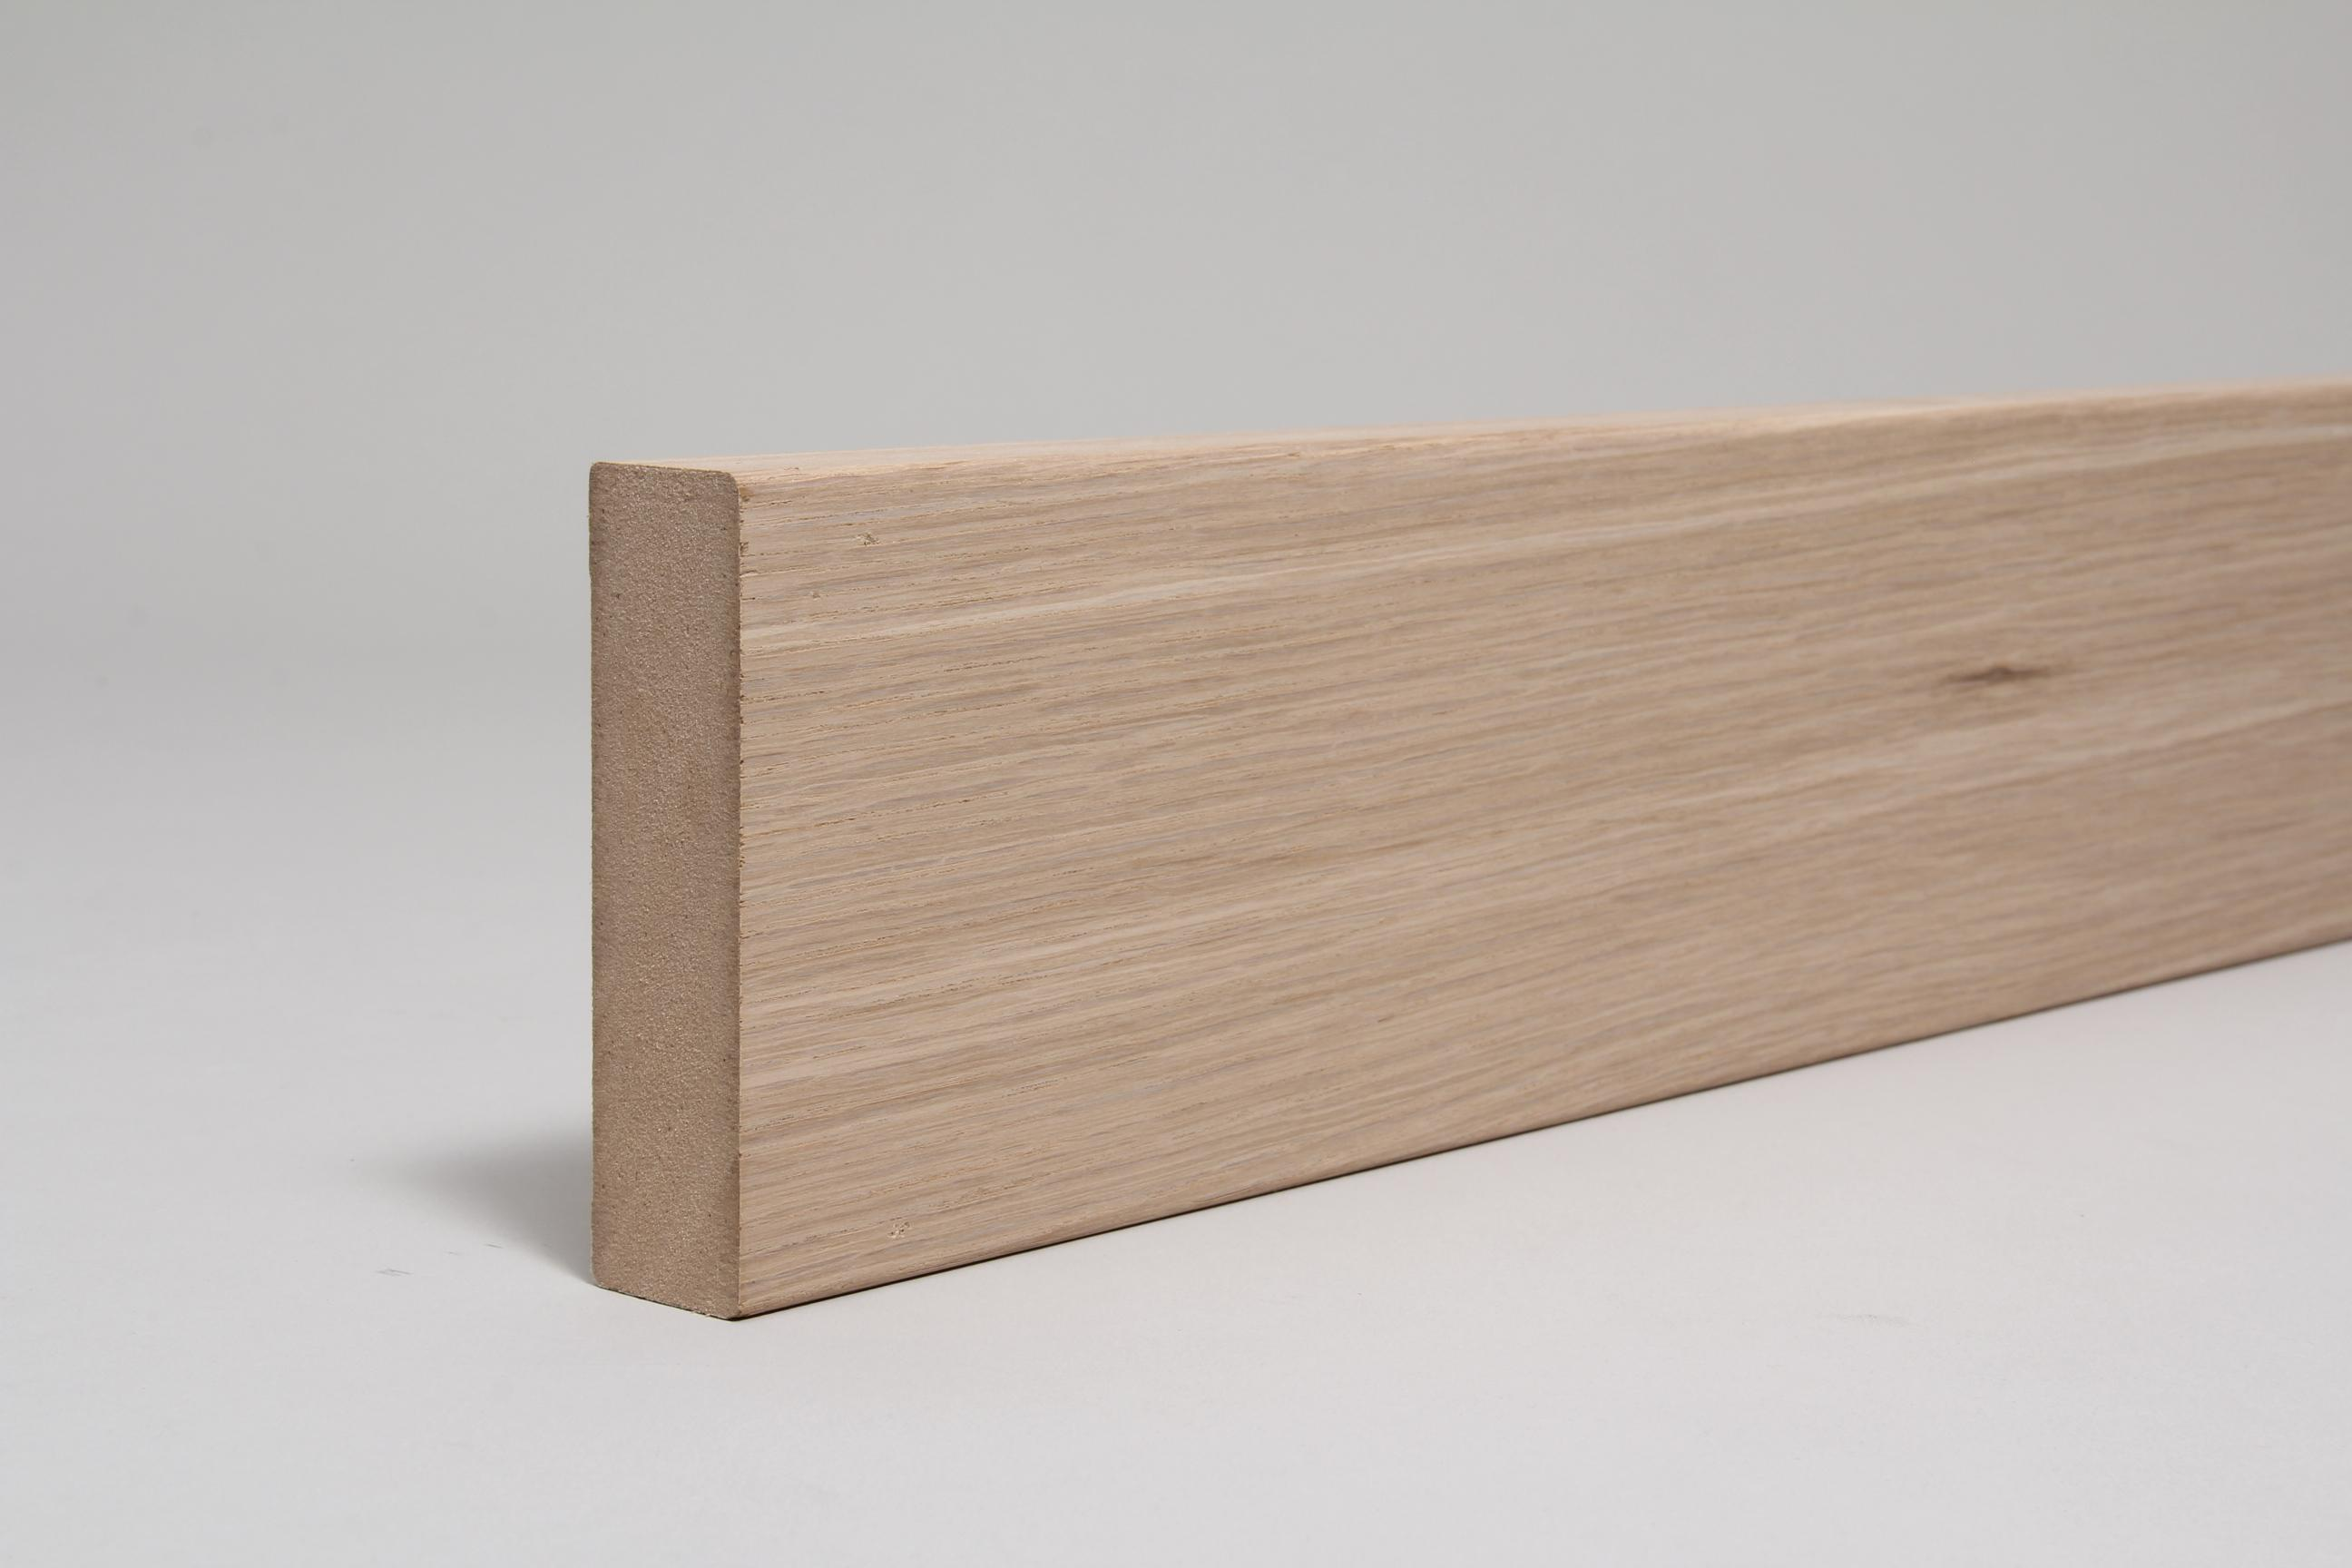 Door Lining Set 25mm x 95mm Veneered American White Oak